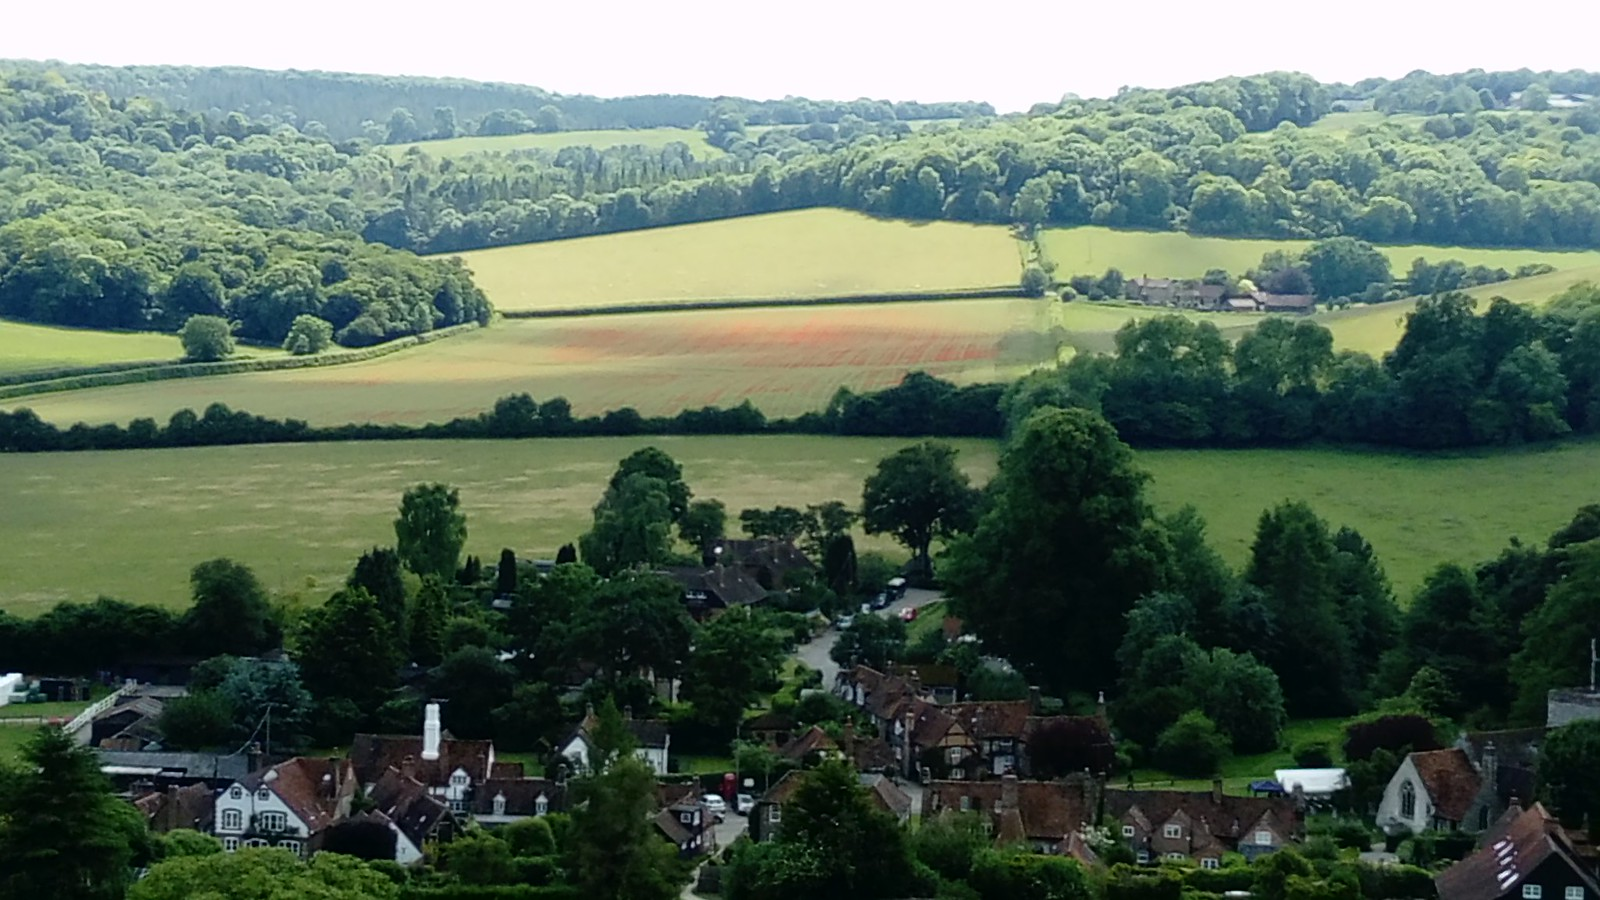 Turville and poppy-filled field beyond, from Cobstone Hill SWC Walk 223 Henley-on-Thames Circular (via Turville)